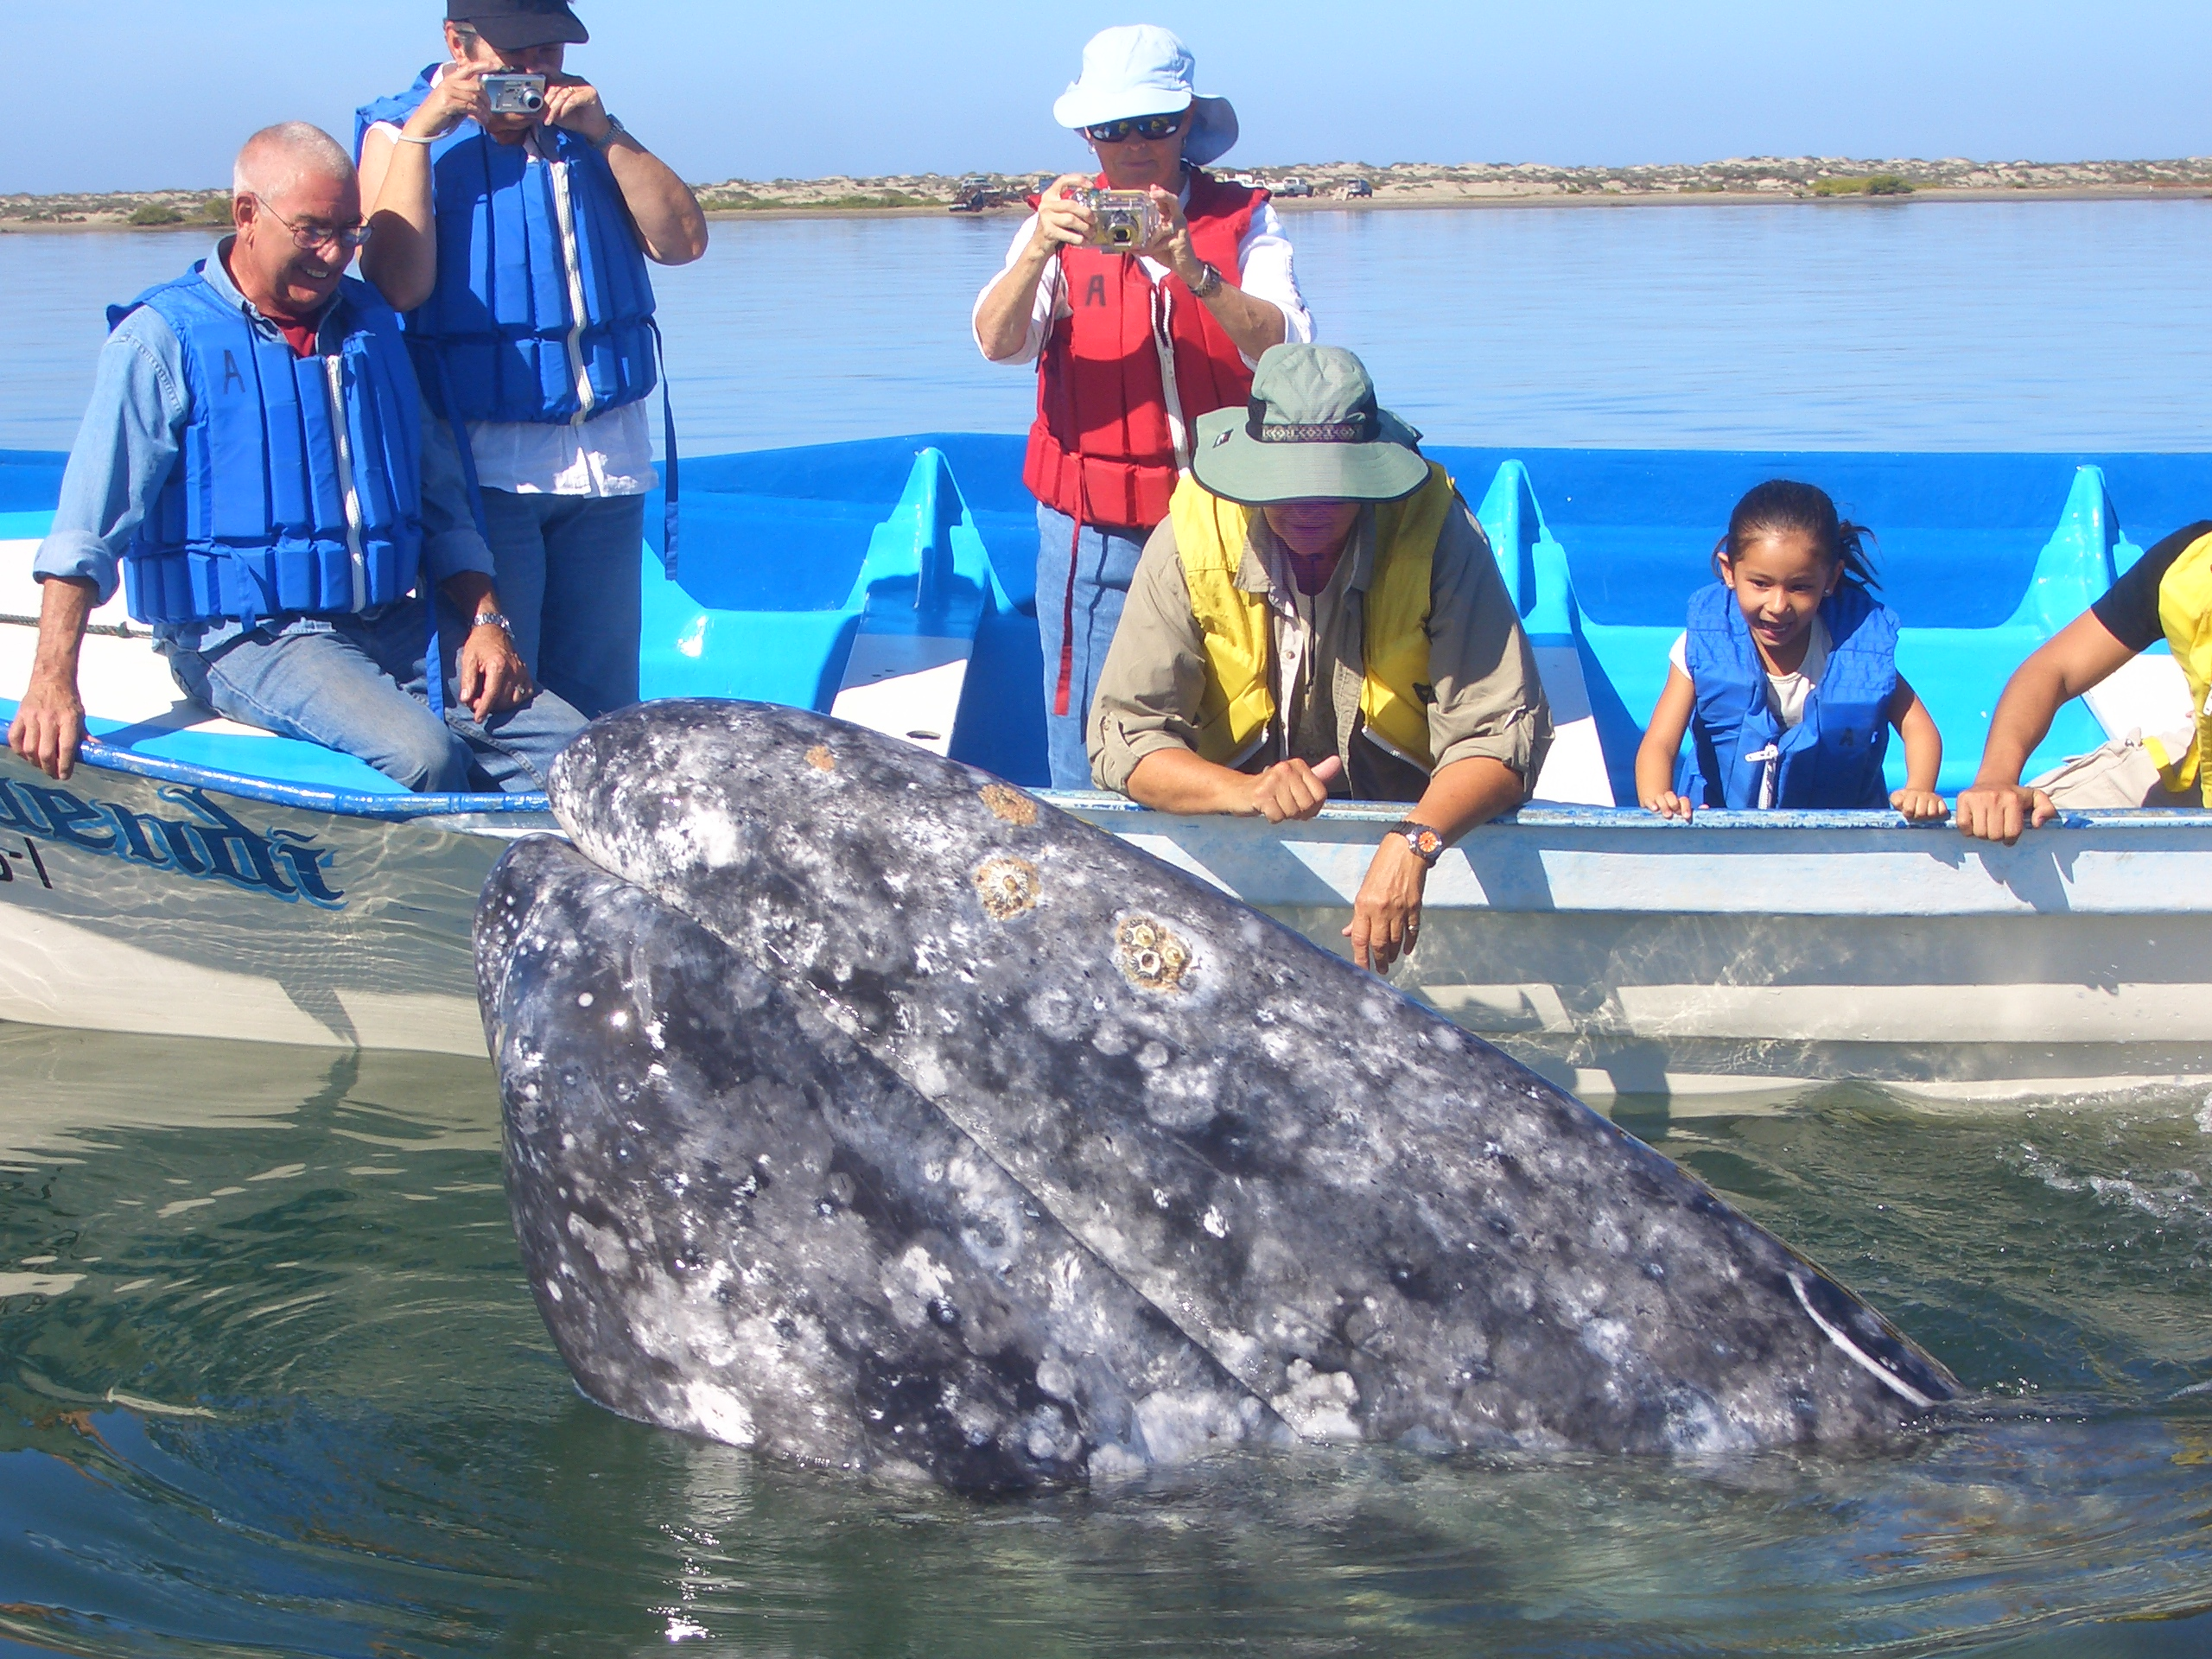 A Whale Watching Family Adventure in La Paz